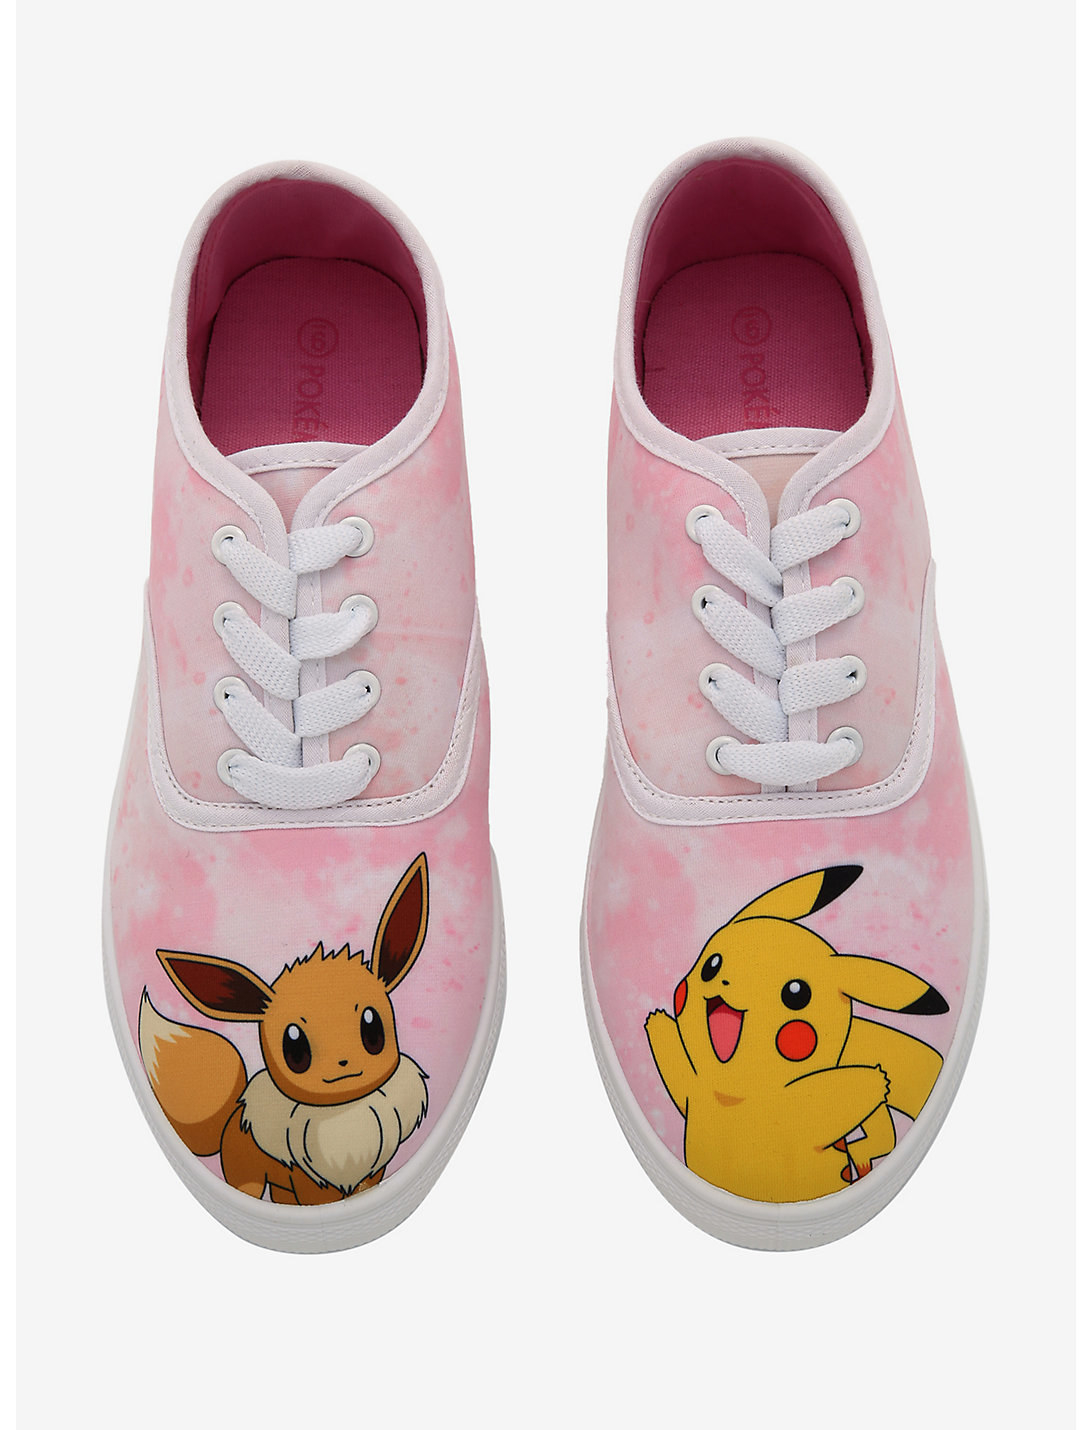 the pink tie dye lace-ups with Eevee on one foot and Pikachu on the other